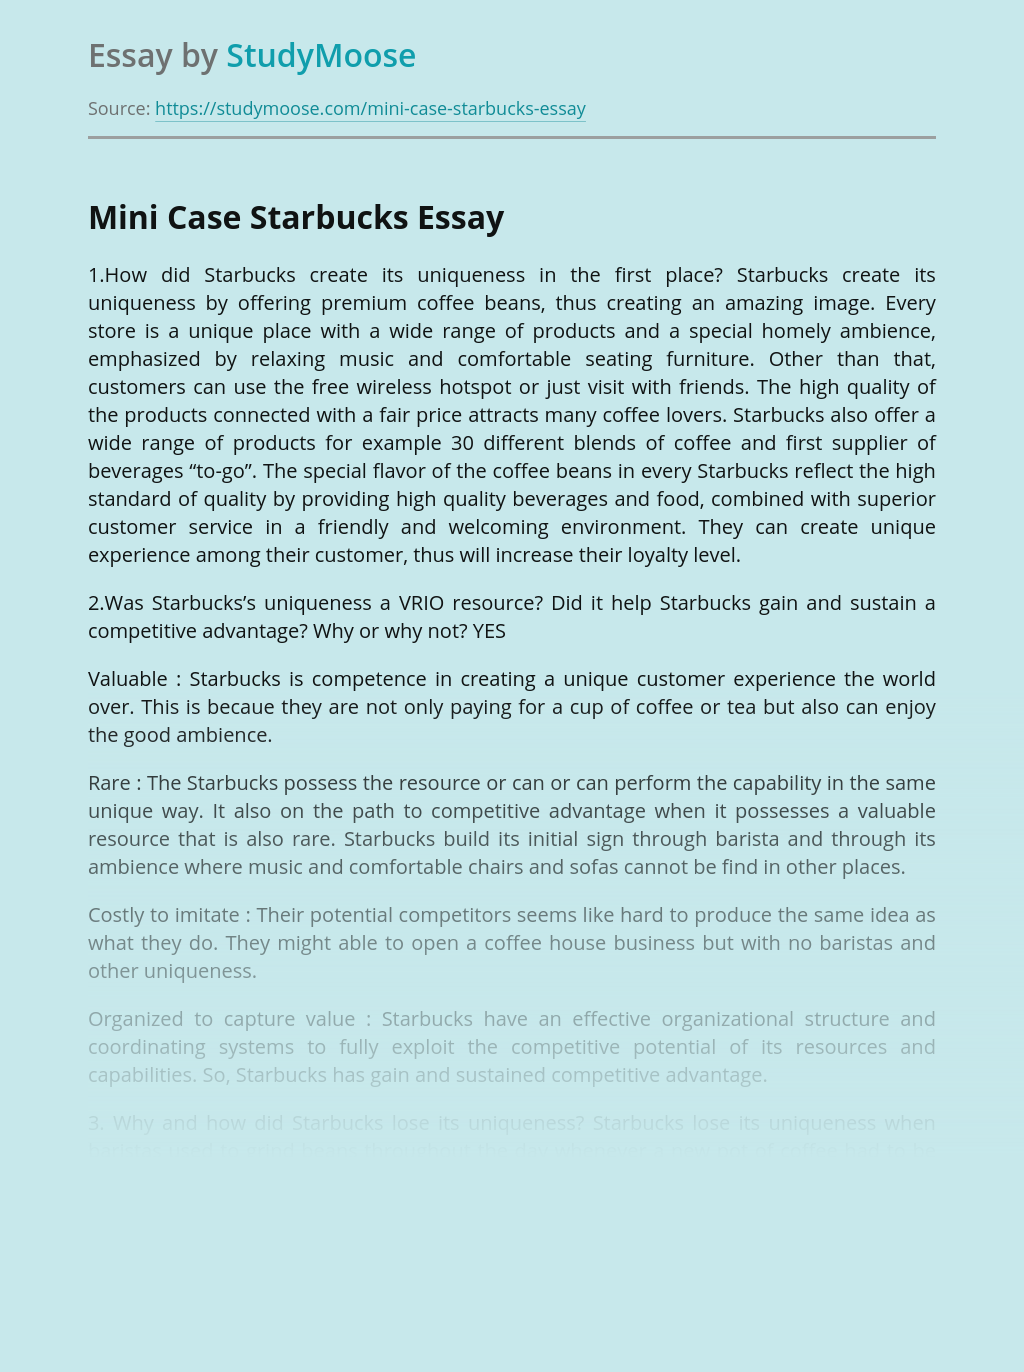 Mini Case Starbucks